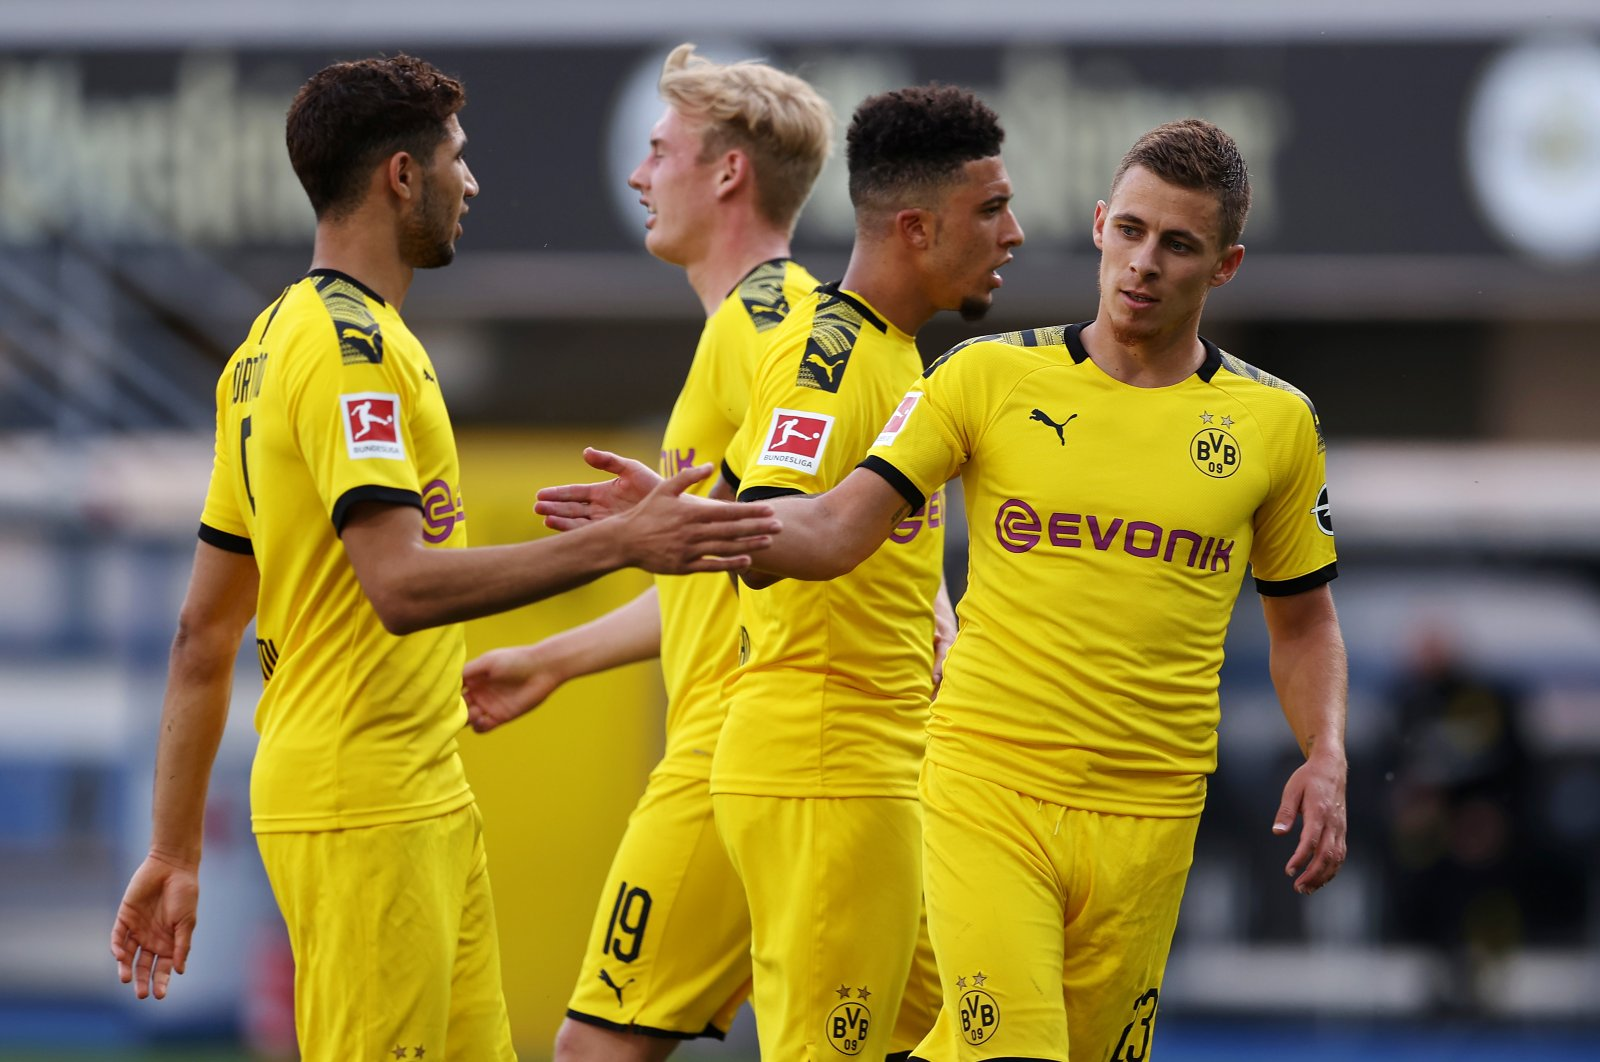 Thorgan Hazard (R) of Borussia Dortmund celebrates with teammates, scoring the 1-0 lead during a match against SC Paderborn 07, Paderborn, Germany, May 31, 2020. (EPA Photo)